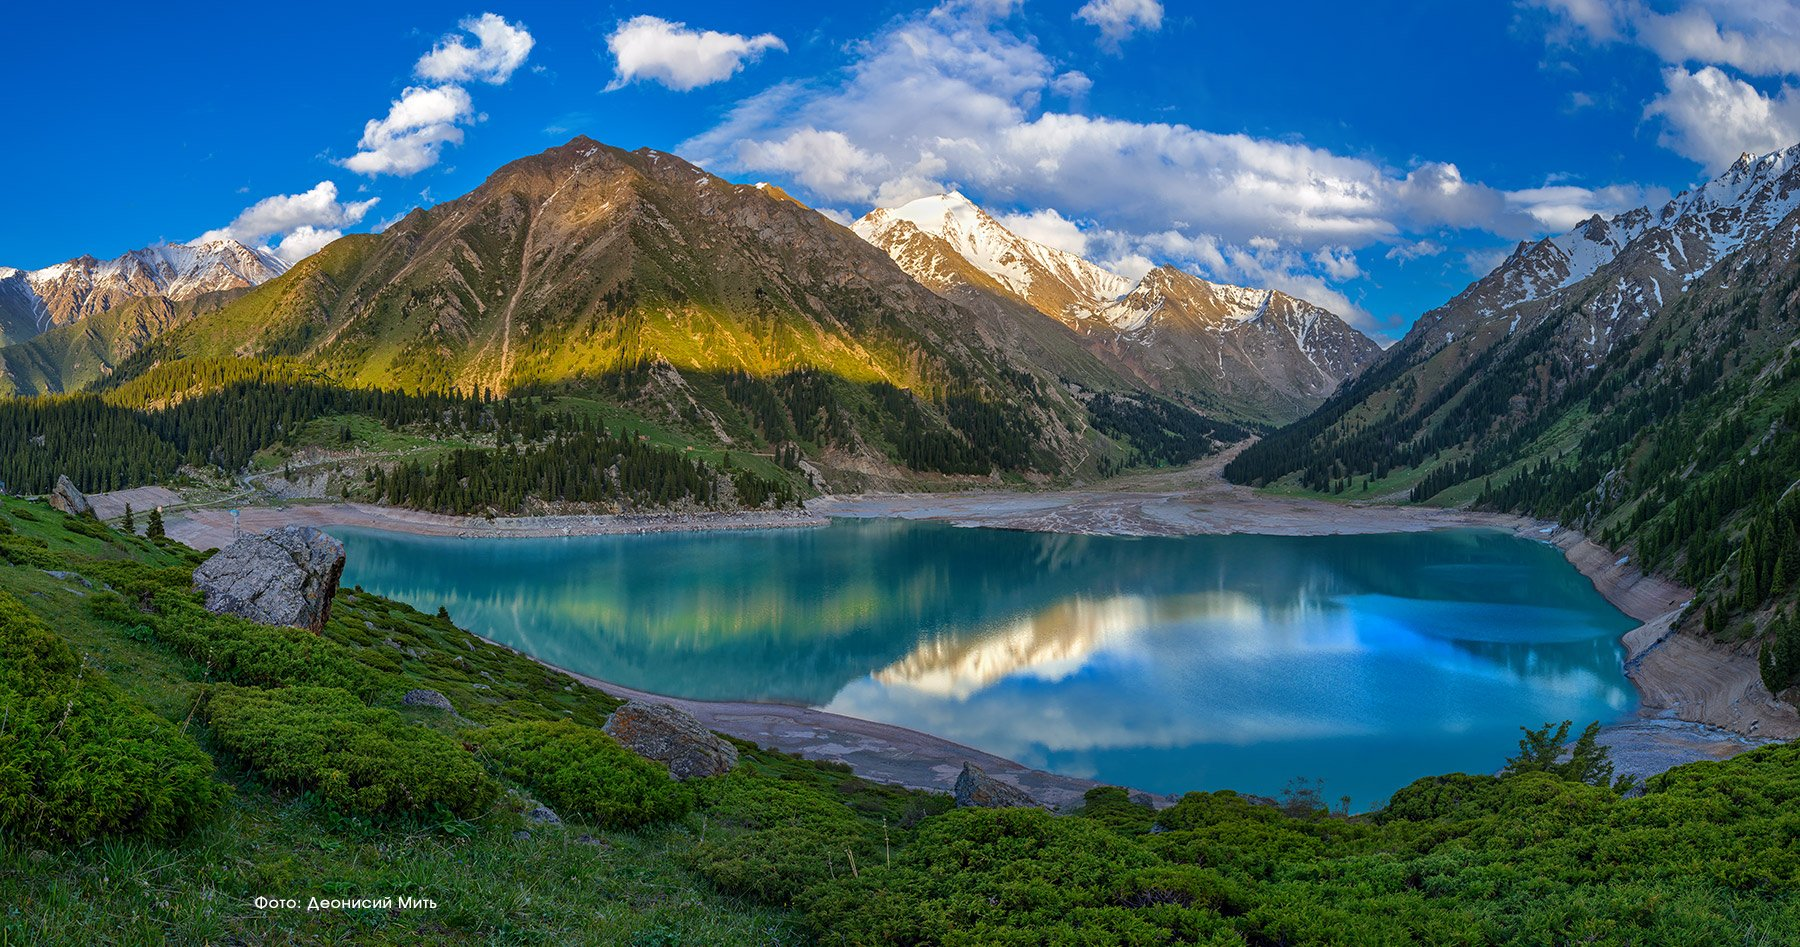 Kazakhstan entered the list of countries that are attractive for tourists